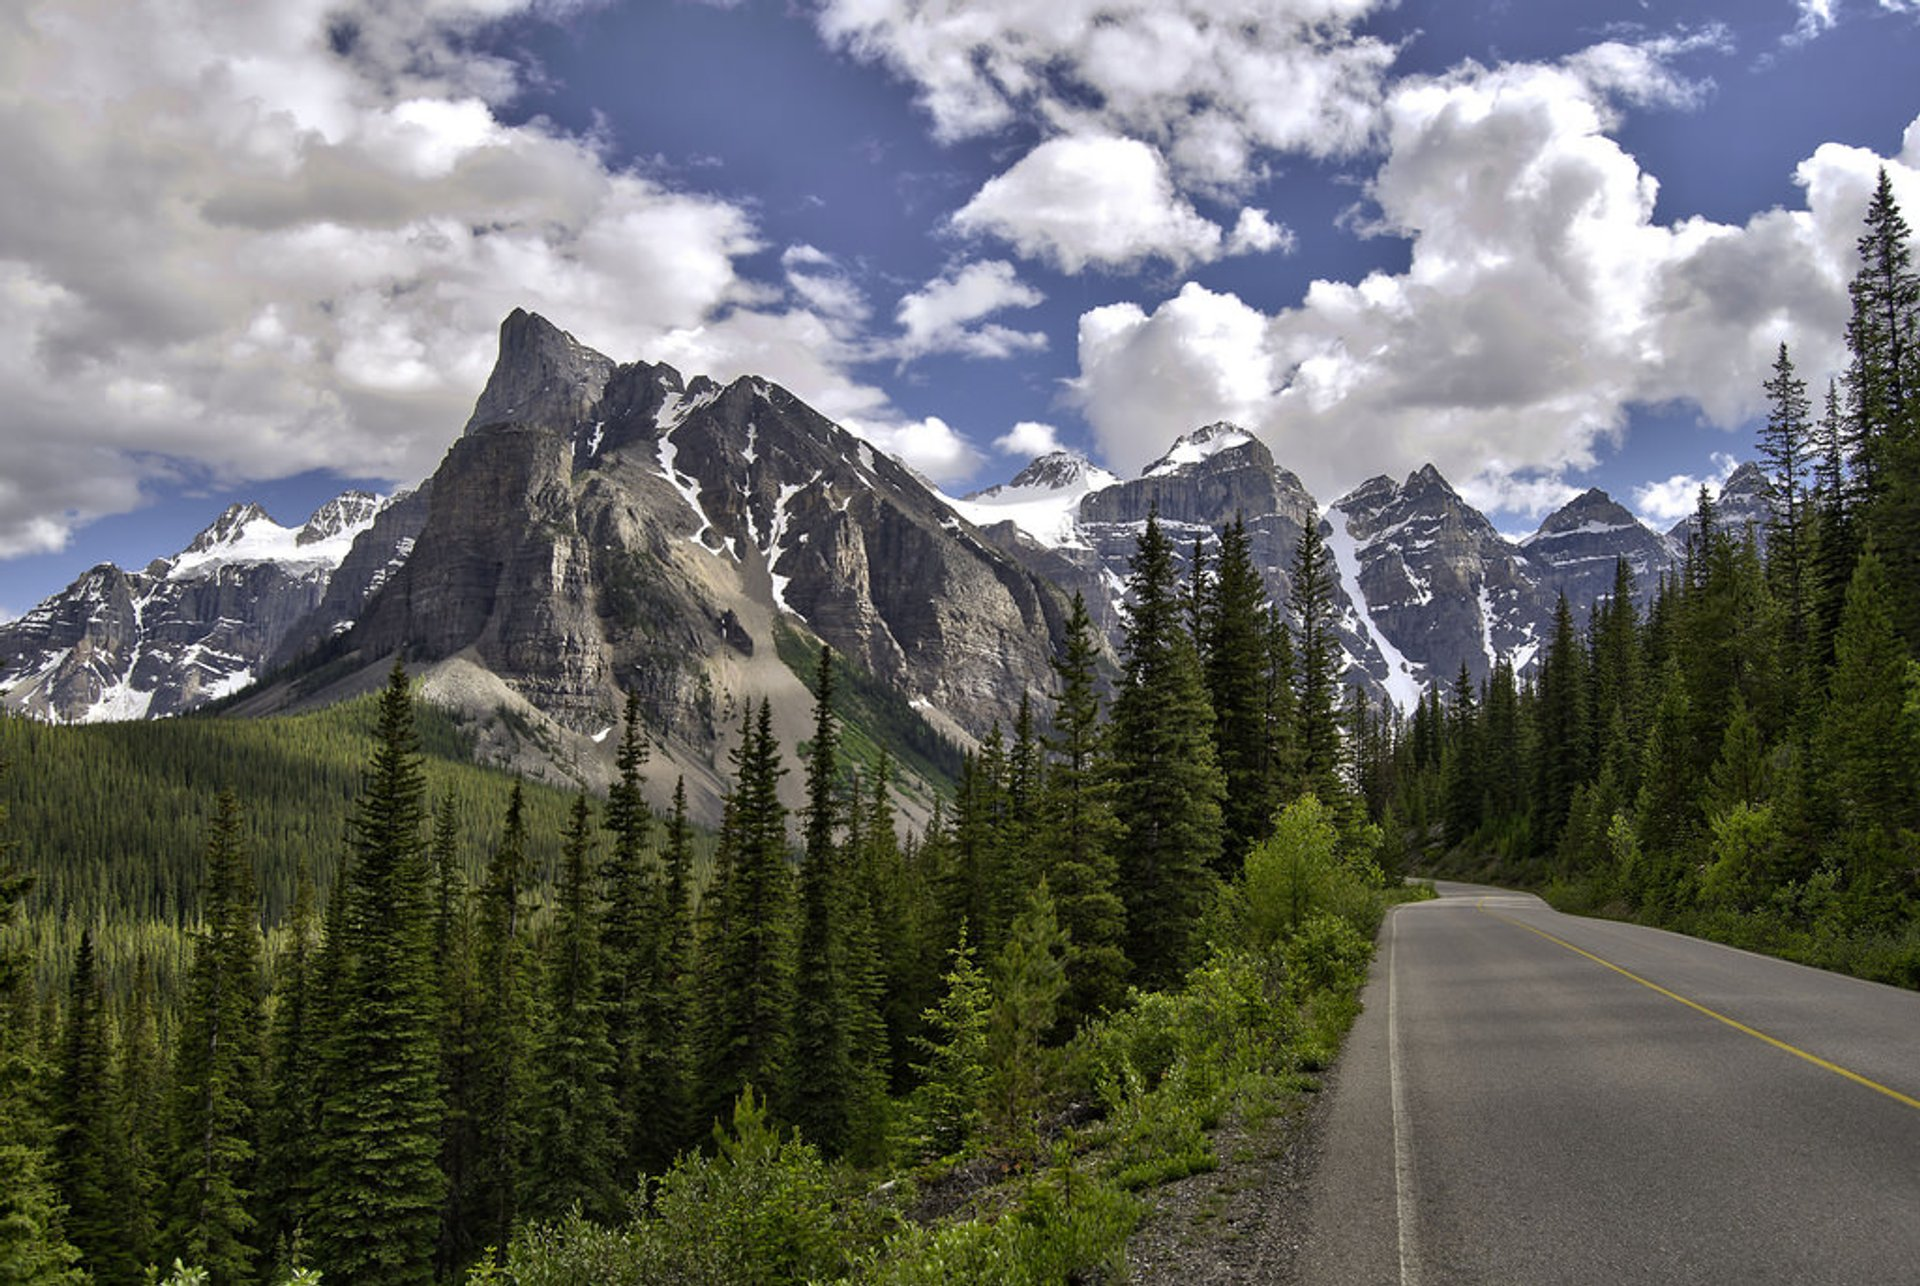 Mountain road to Moraine Lake 2020